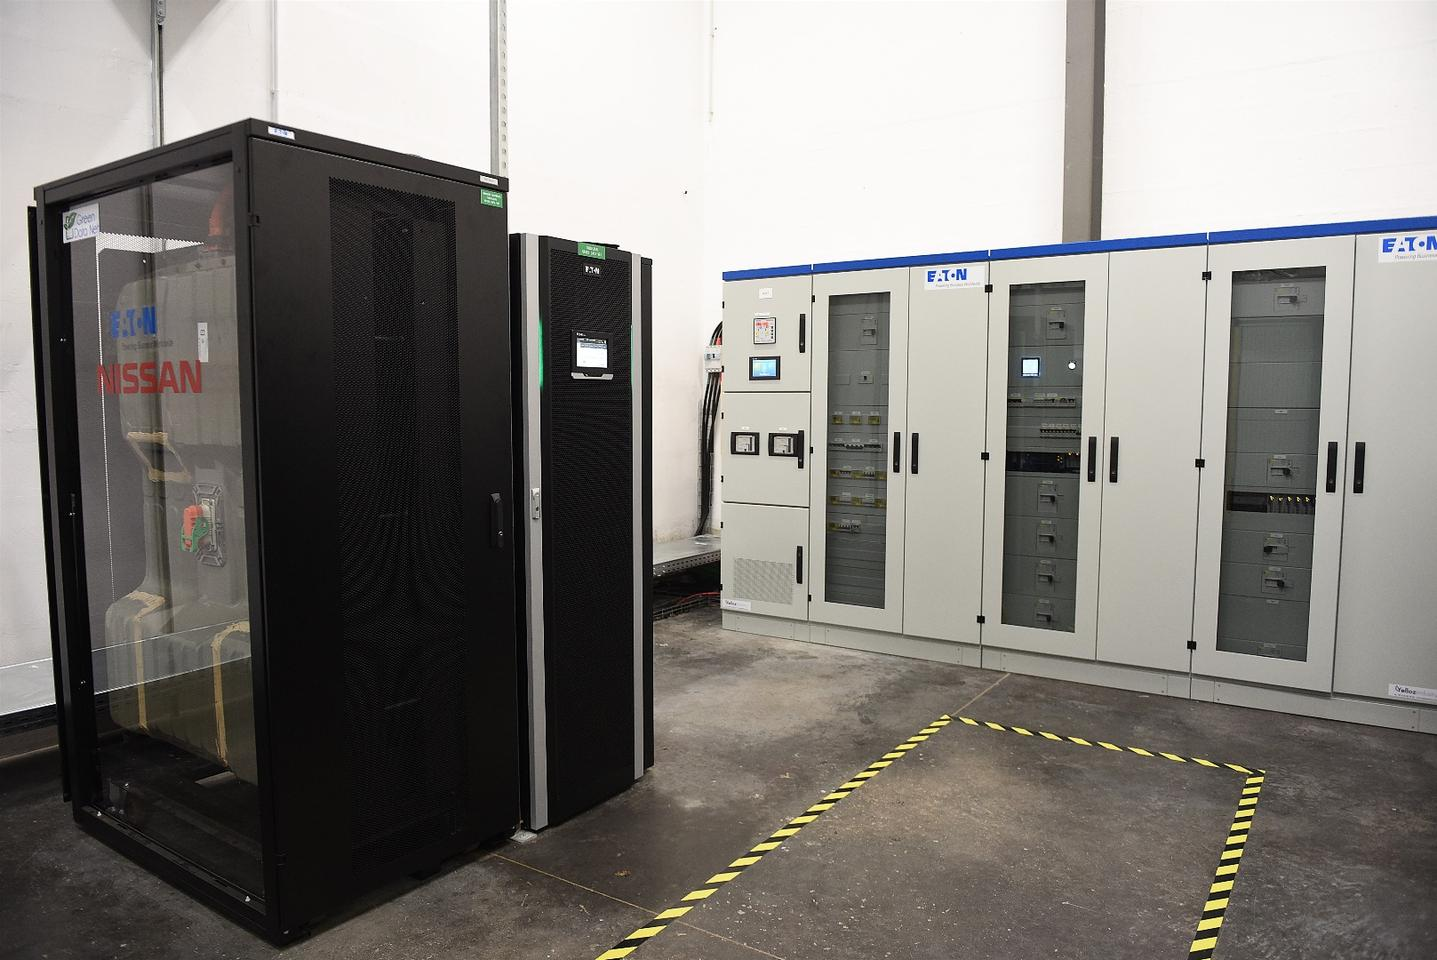 Nissan has teamed up with Eaton to repurpose old Leaf EV batteries forstoring renewable energy in data centers